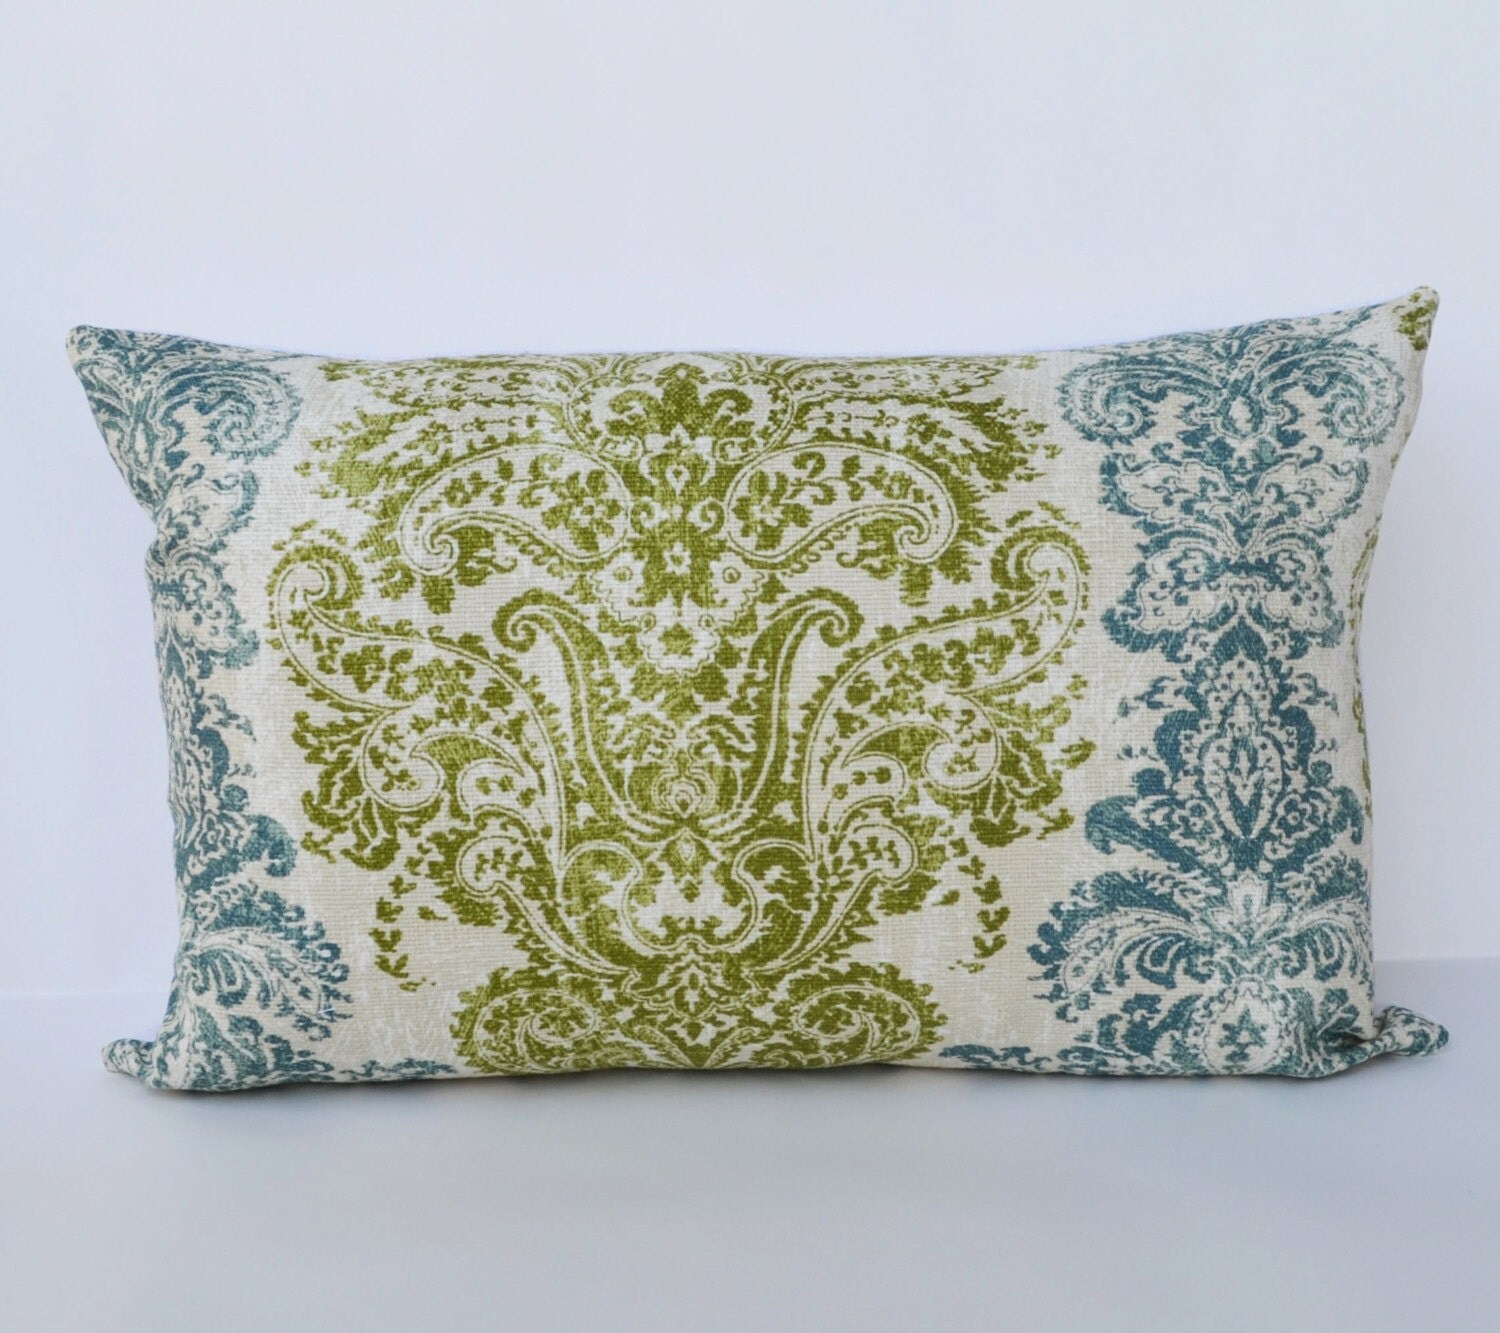 Decorative Pillows 12x18 teal green distressed wallpaper